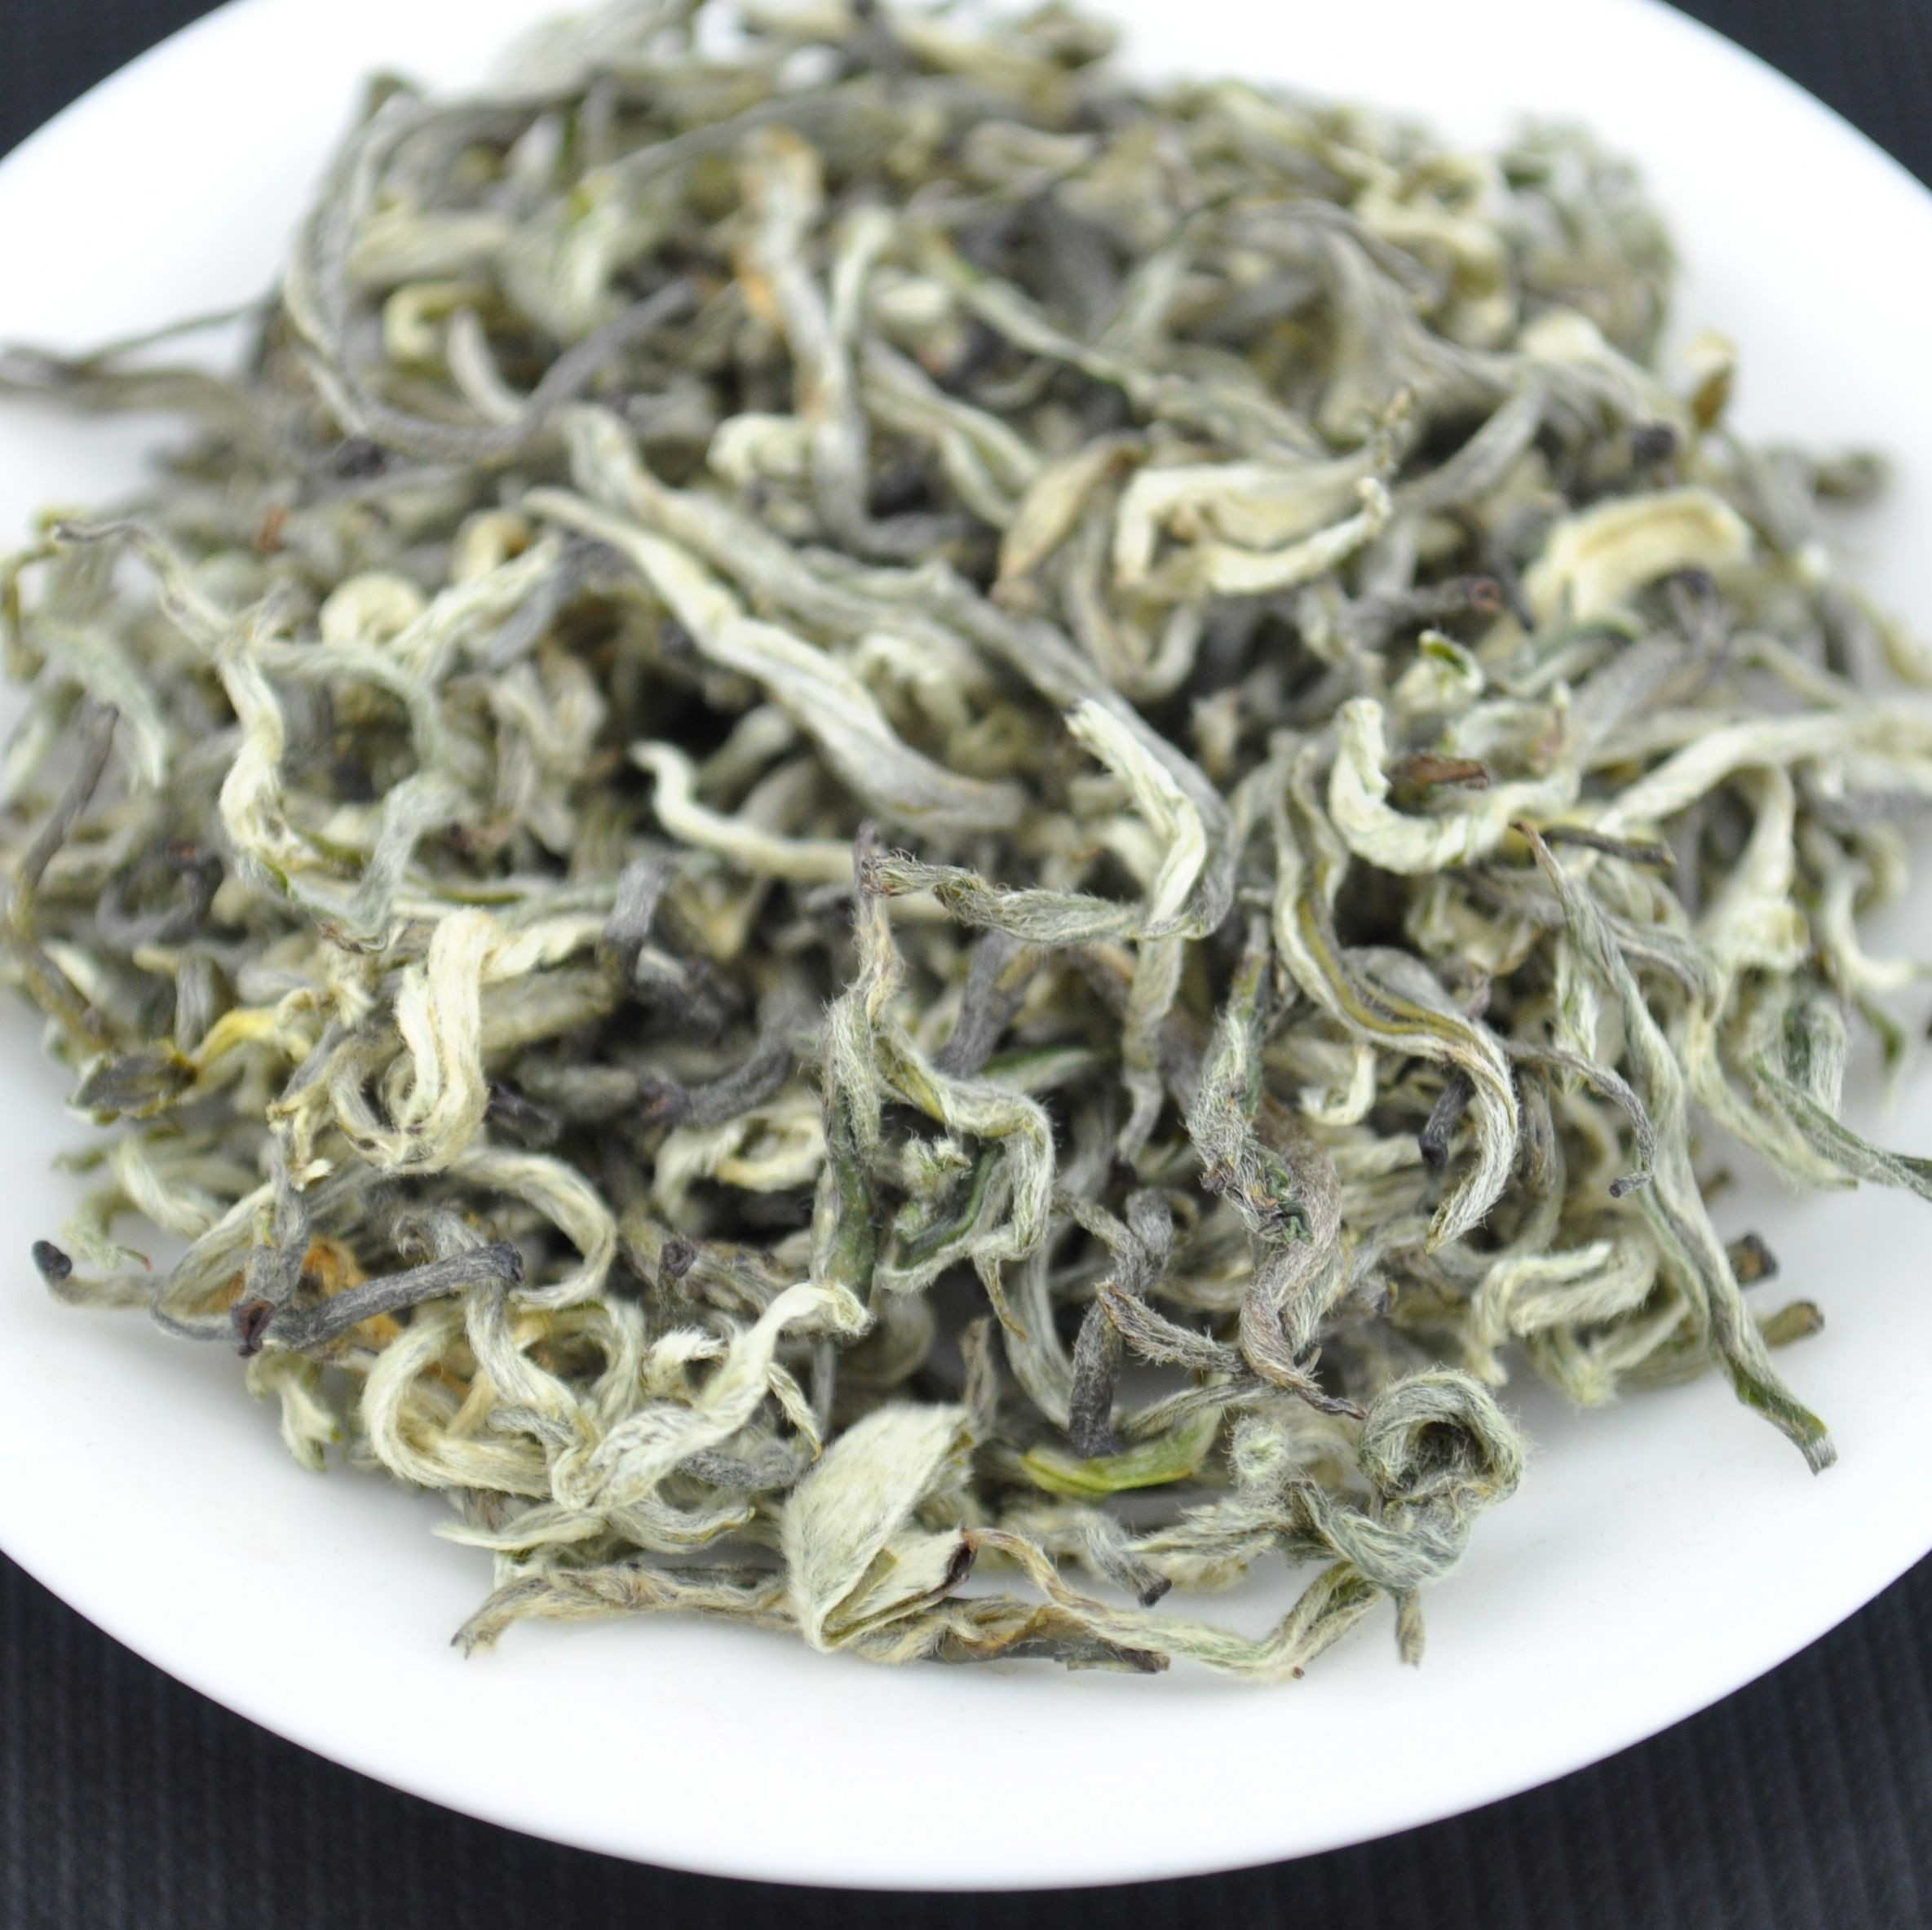 Imperial Pure Bud Bi Luo Chun Yunnan White Tea * 2014 Autumn